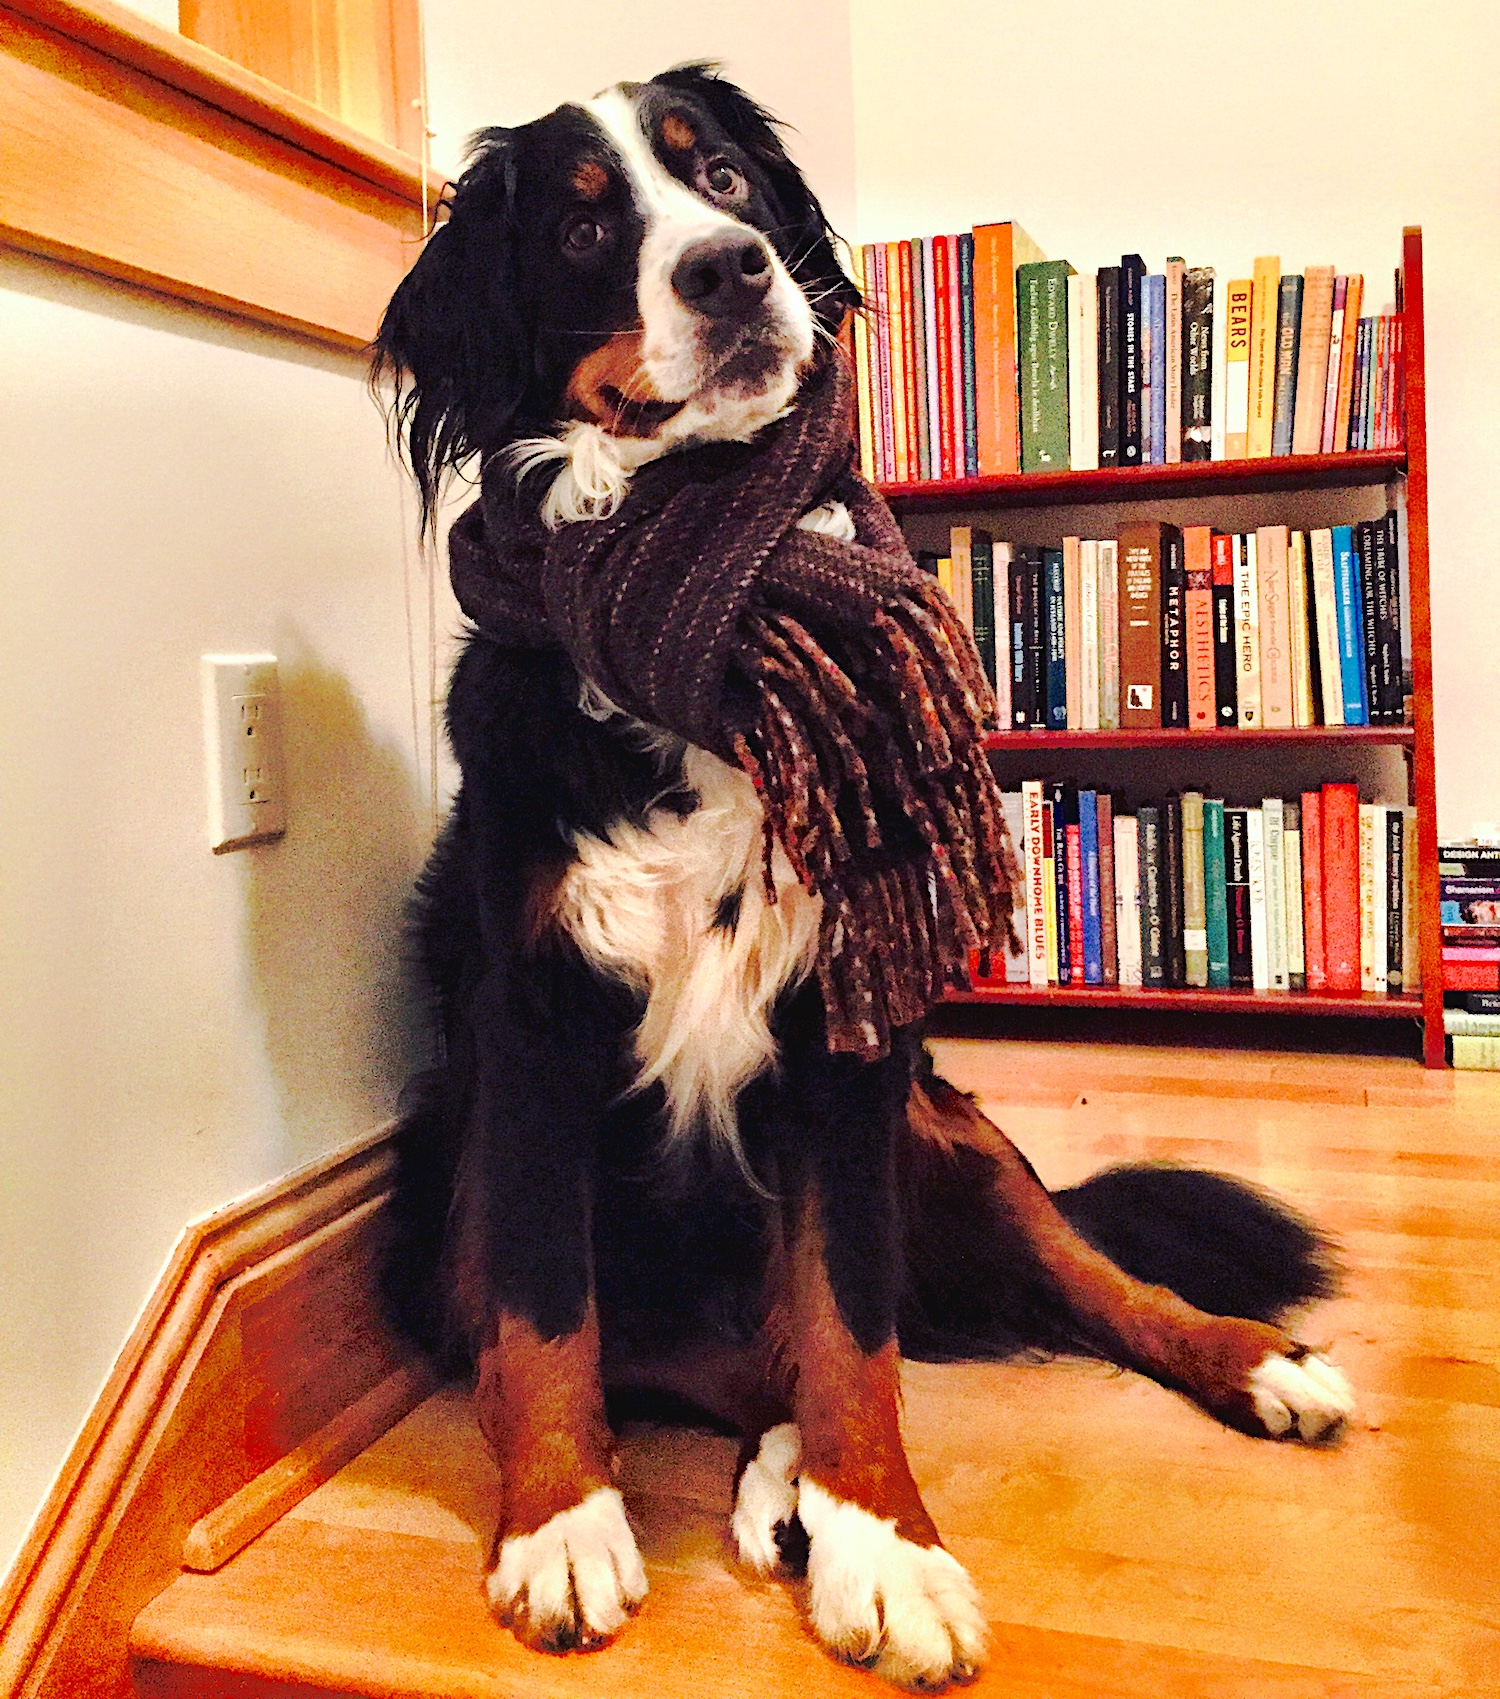 Spokesdog, Sofia the Bernese Mountain Dog,posing in her scarf by book shelves.